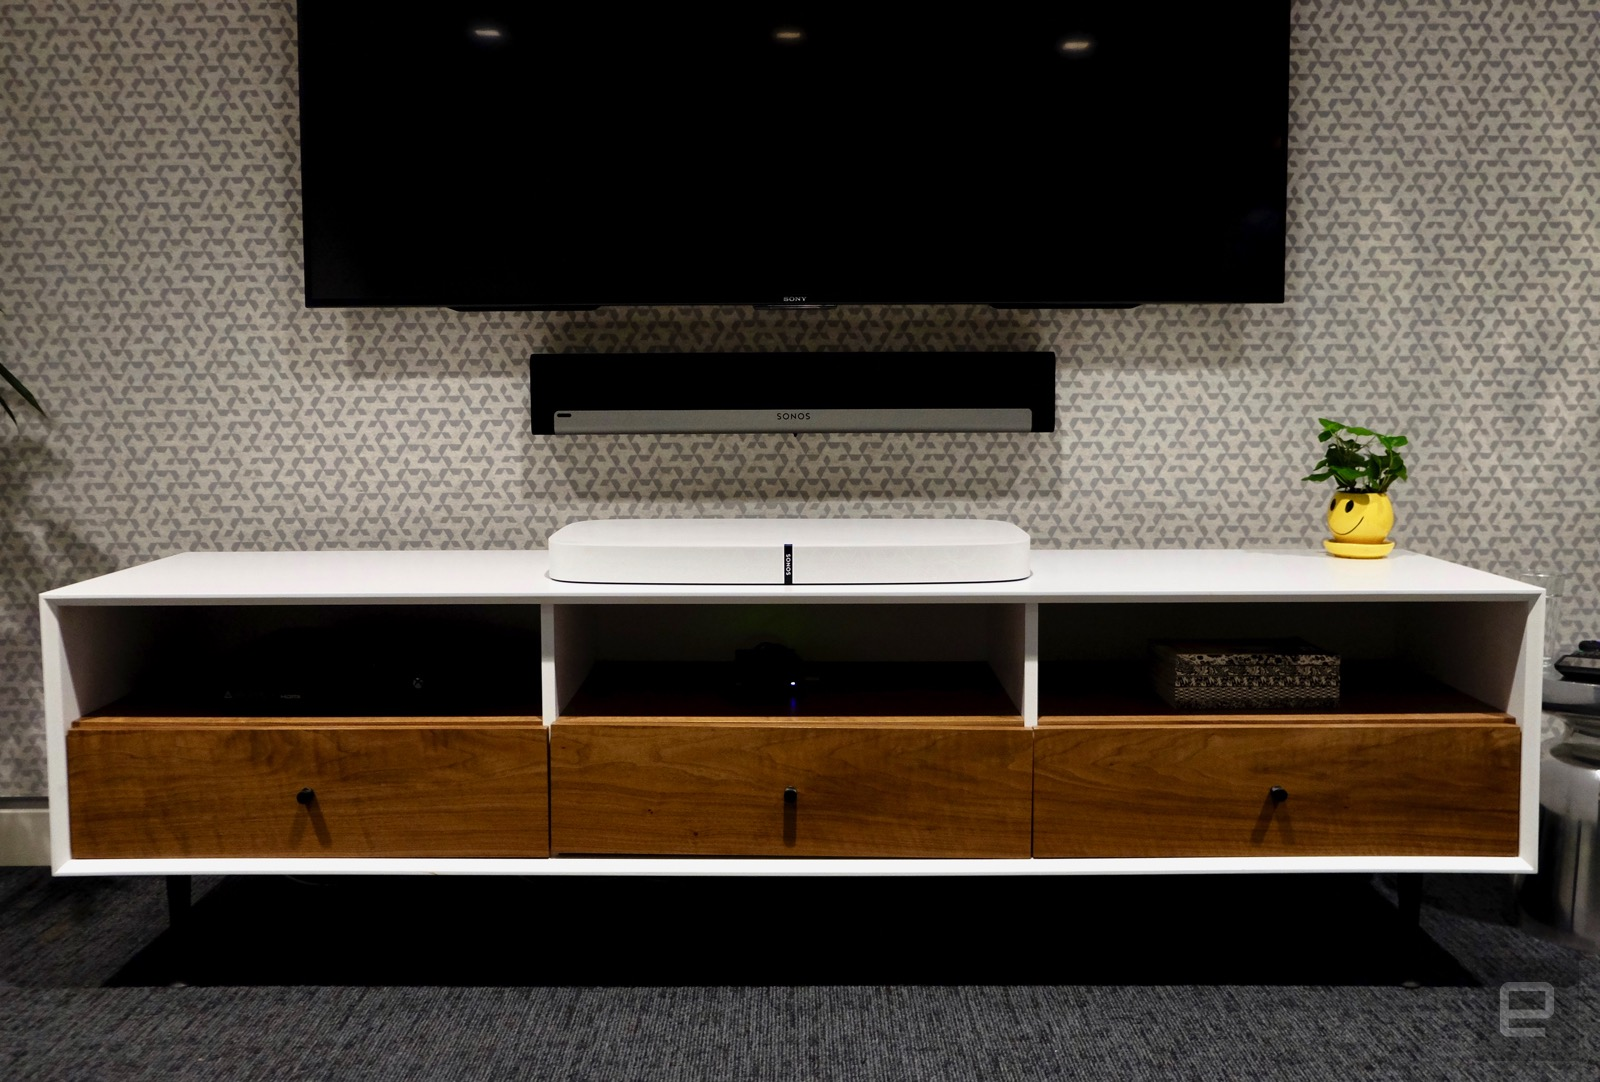 How Sonos Made The New Playbase Sound A Lot Better Than It Should Wiring Diagram Of Course That Design Choice Was Very Deliberate One Which Will Be Available Worldwide On April 4th Is Meant To Live Media Stand